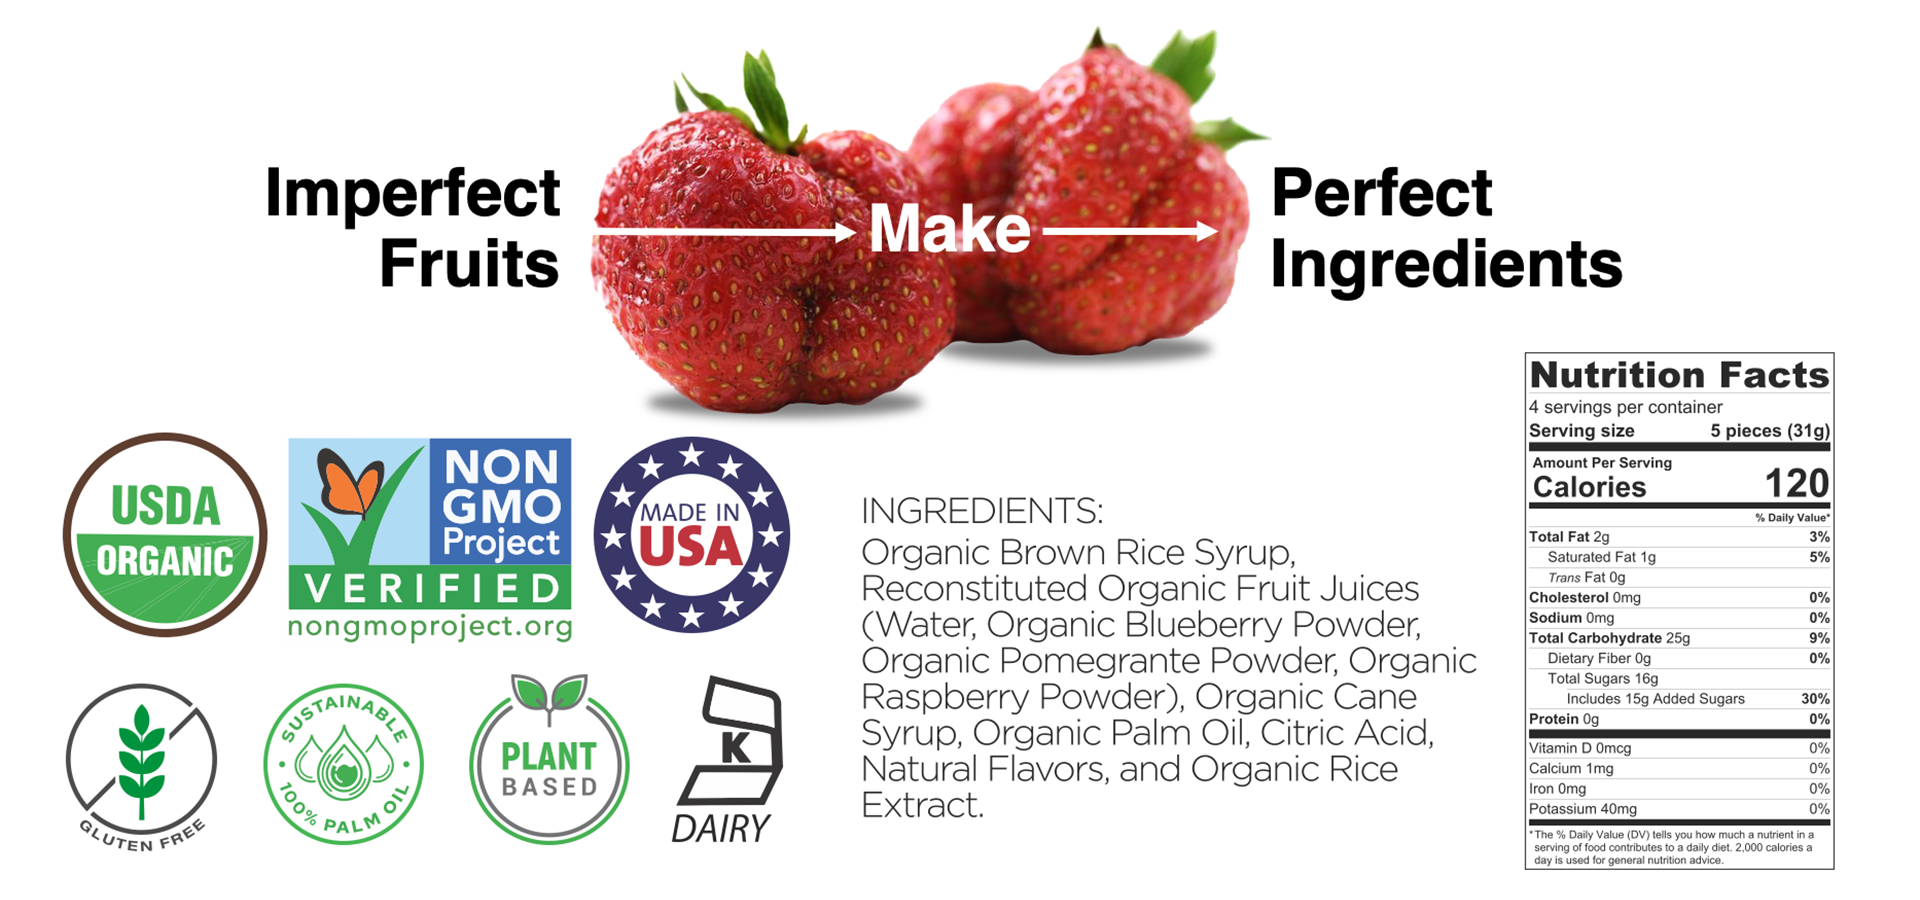 healthy fruit snacks made from real organic fruit, kosher, non GMO, vegan and gluten free